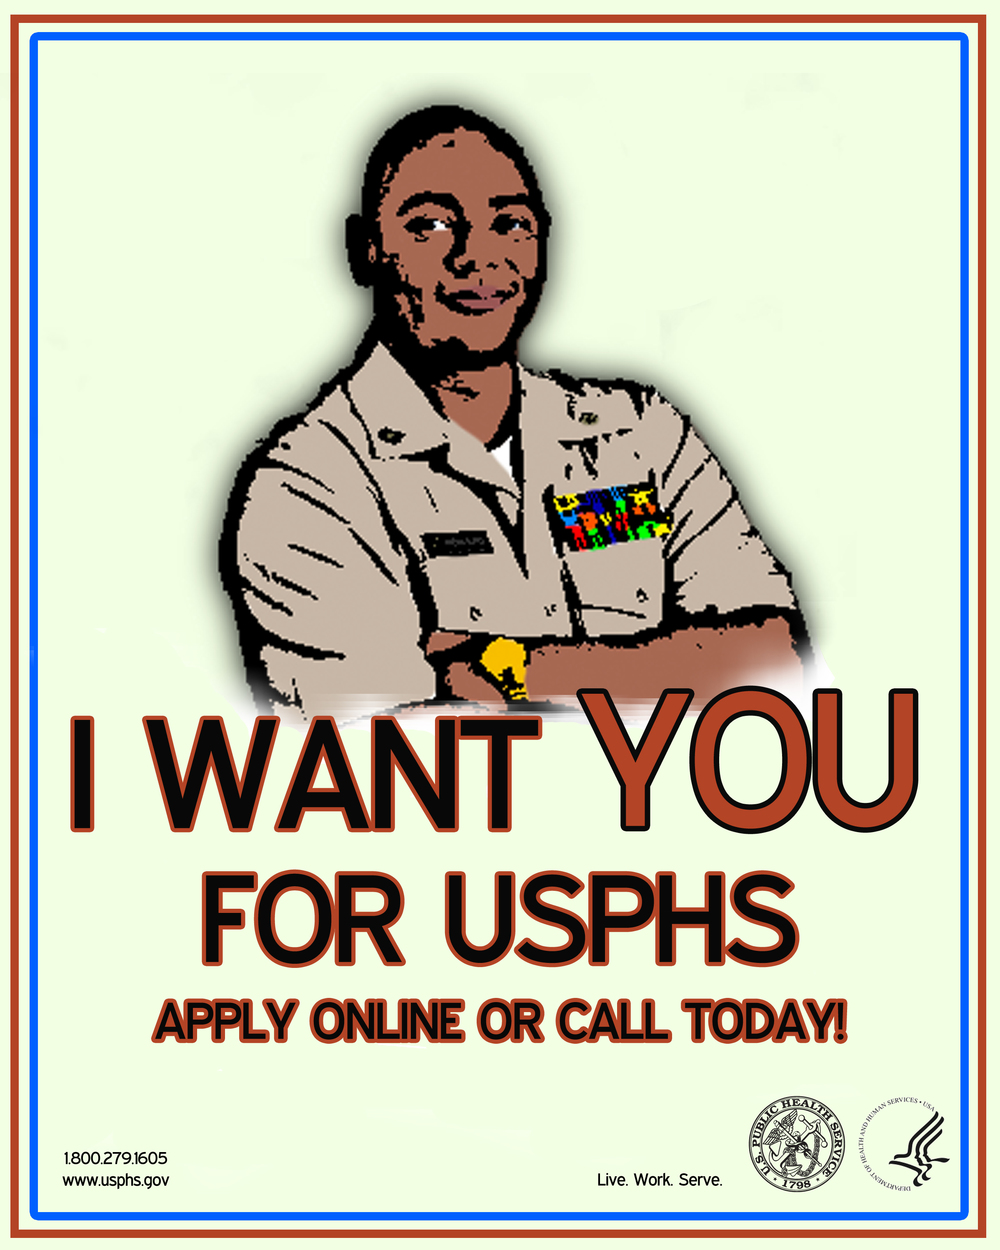 USPHS World War II Era Campaign